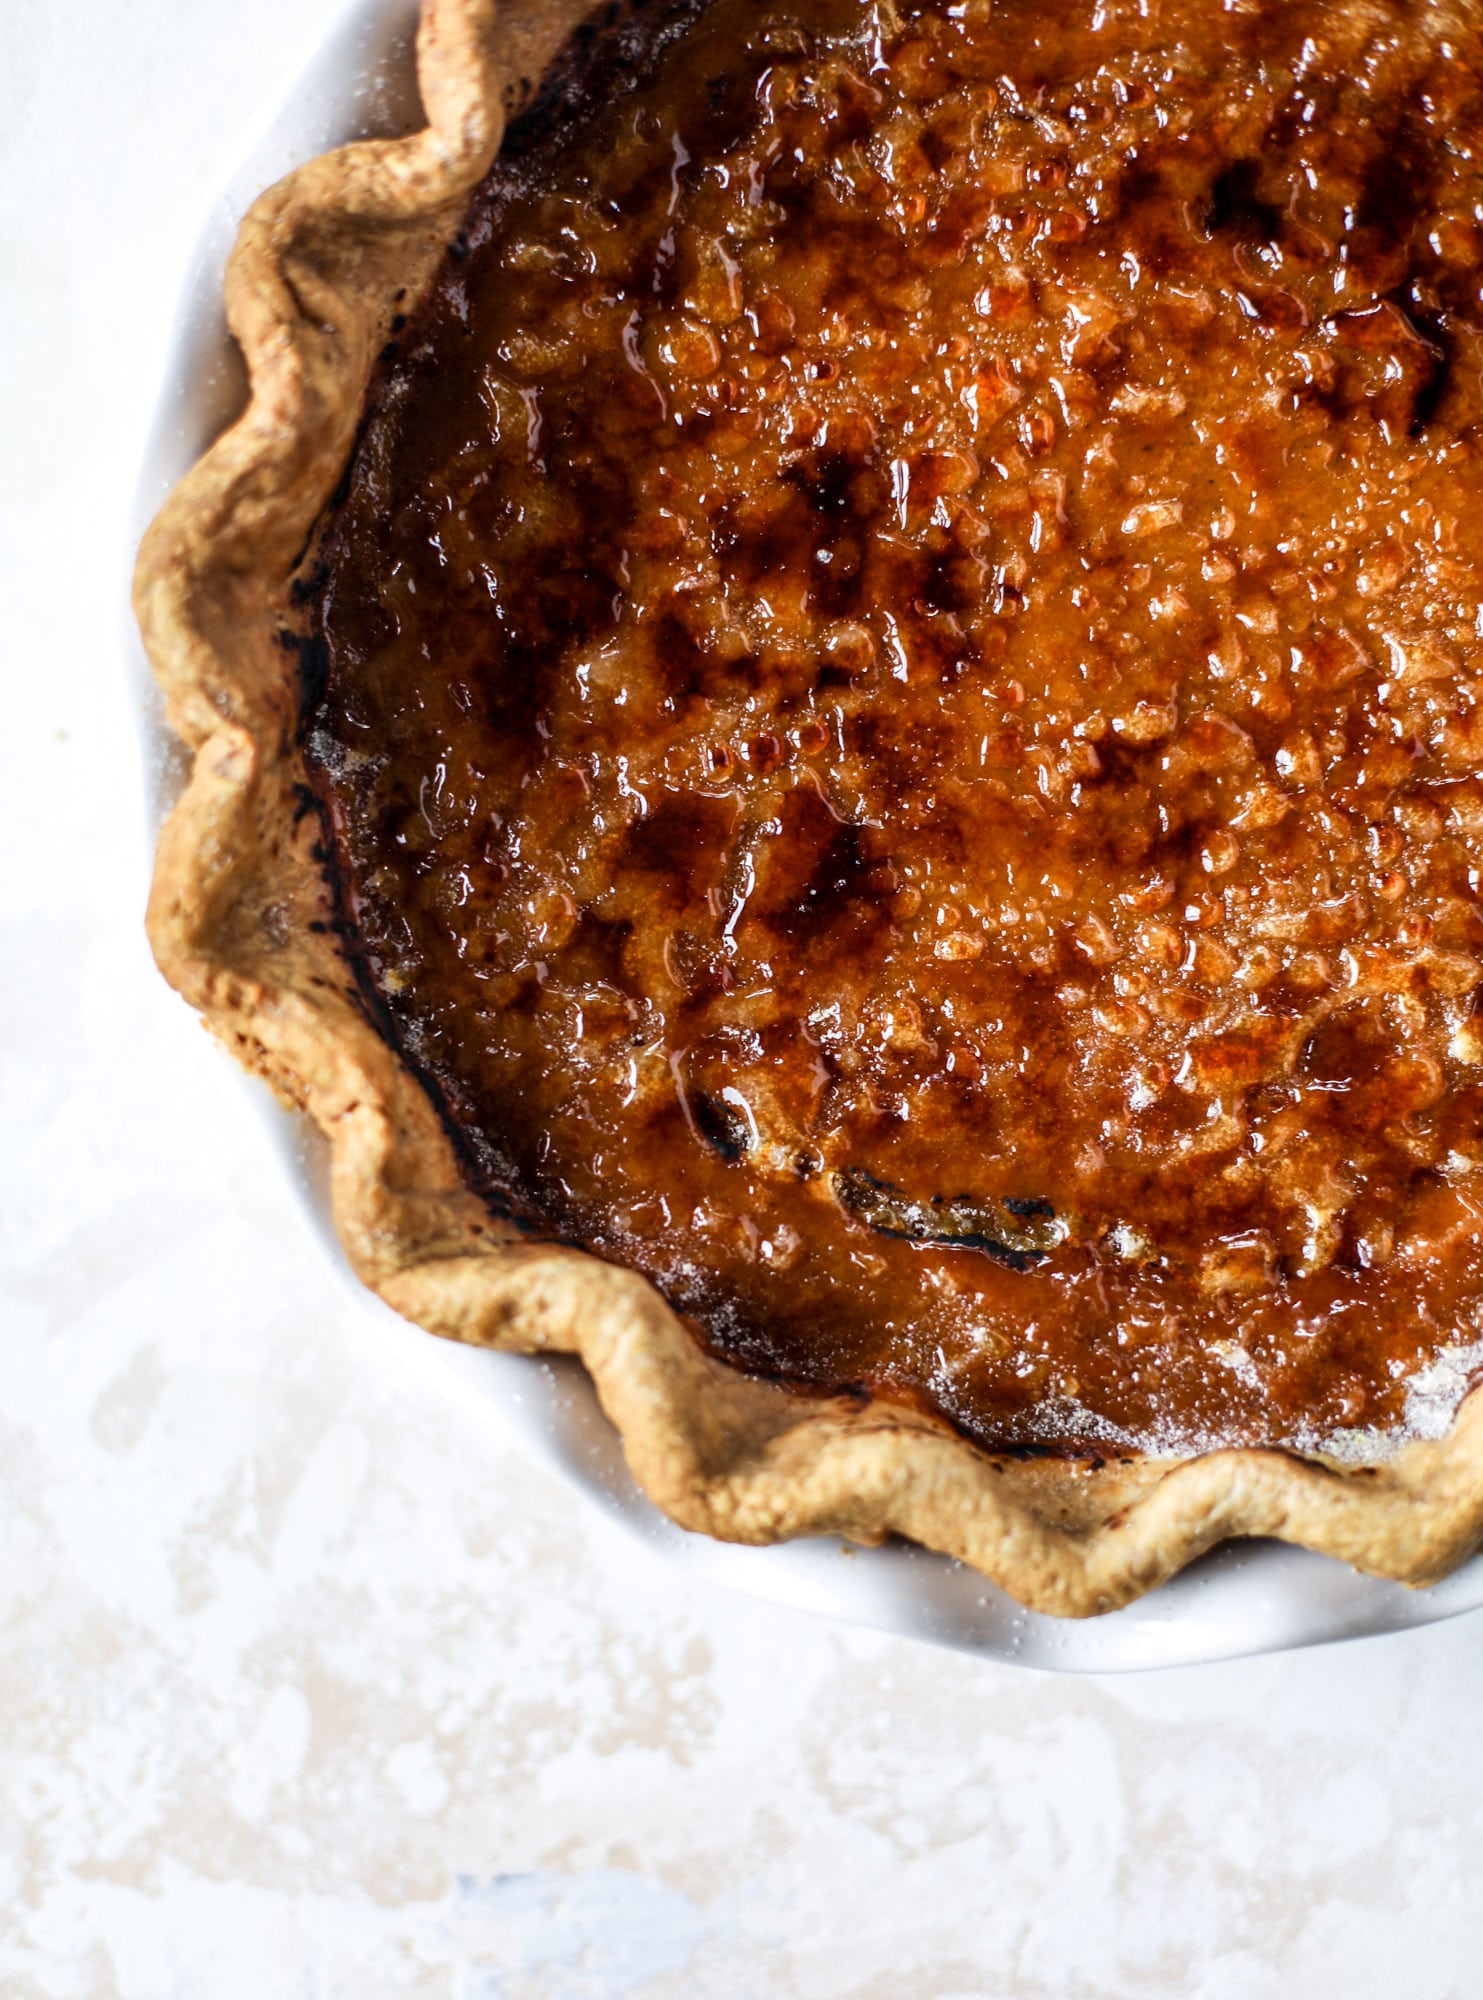 This brûlée pumpkin pie is the best of both worlds in pumpkin desserts! A delicious flaky crust, a creamy pumpkin filling and a crunchy, crispy topping - brûléed sugar right before serving. It's a whole new way to serve pumpkin pie! I howsweeteats.com #pumpkinpie #brulee